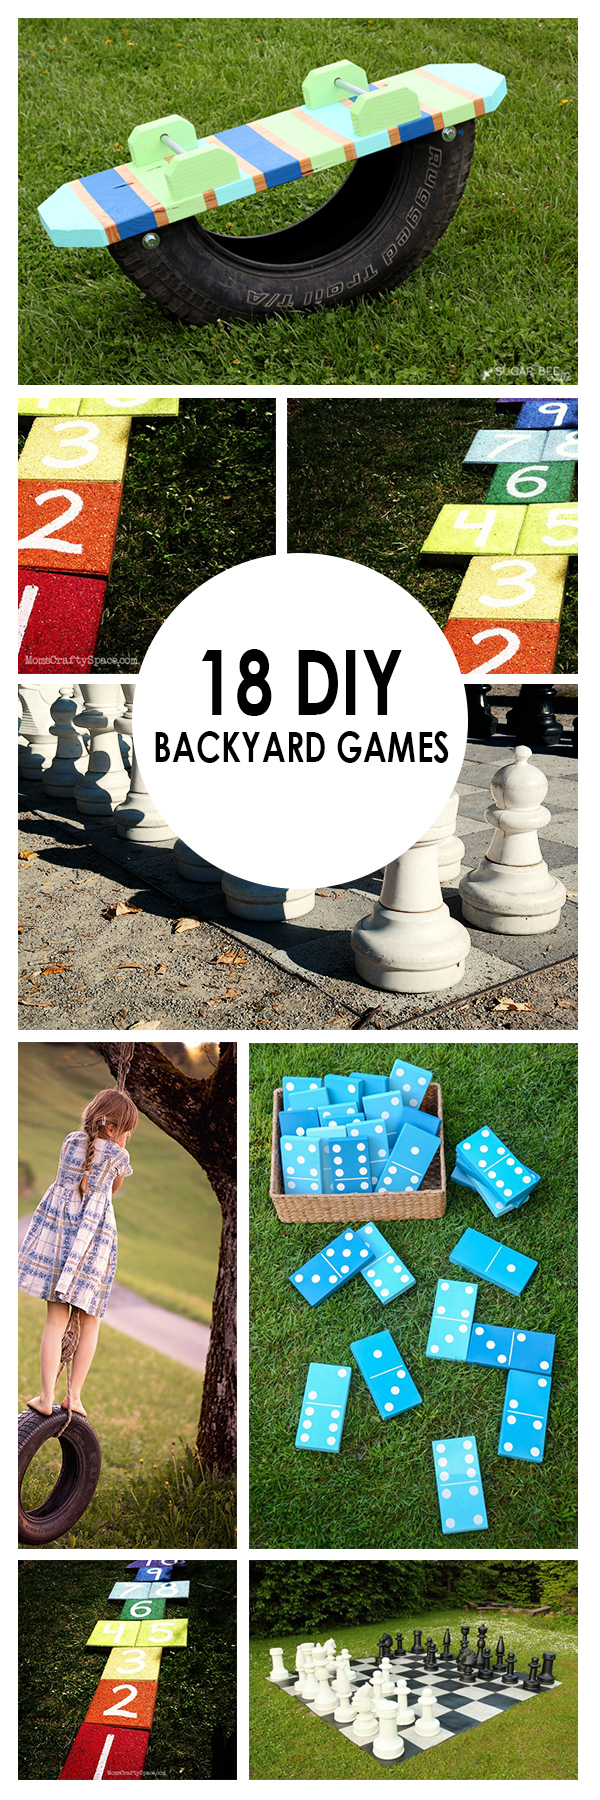 Backyard games, backyard hacks, popular pin, backyard living, backyards, DIY outdoor living, outdoor living, landscaping hacks, gardening.